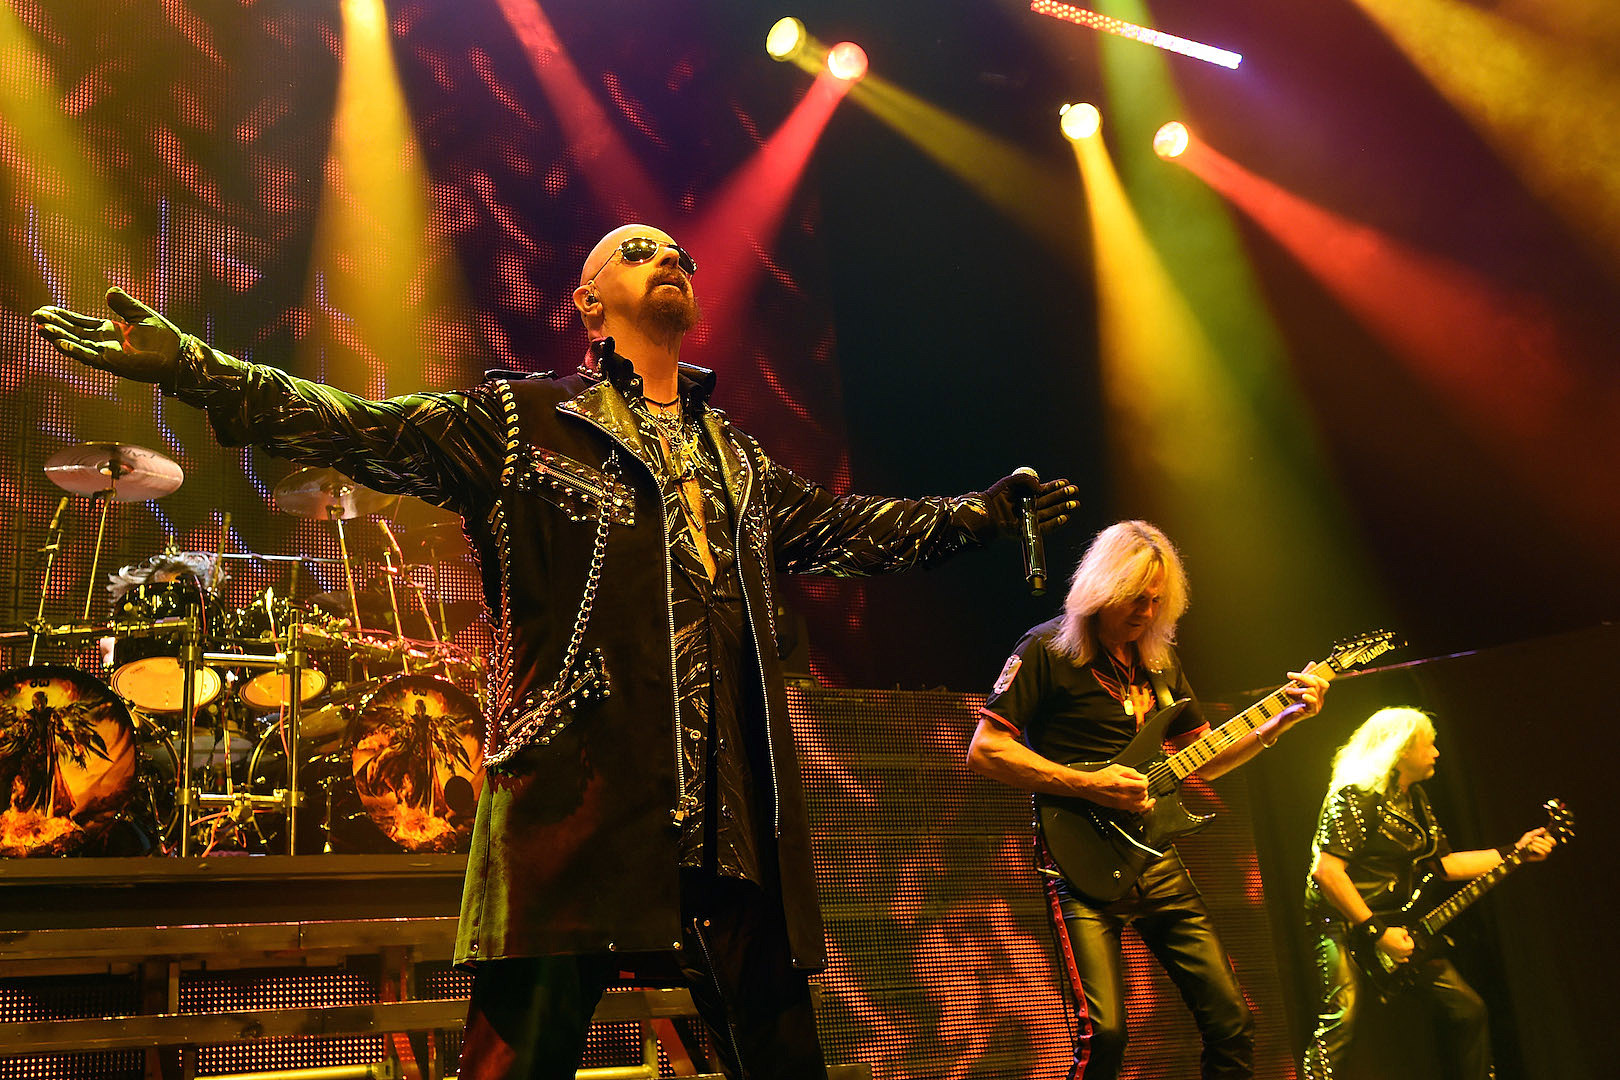 Opinion: If Judas Priest Get Rock Hall Induction, More ...